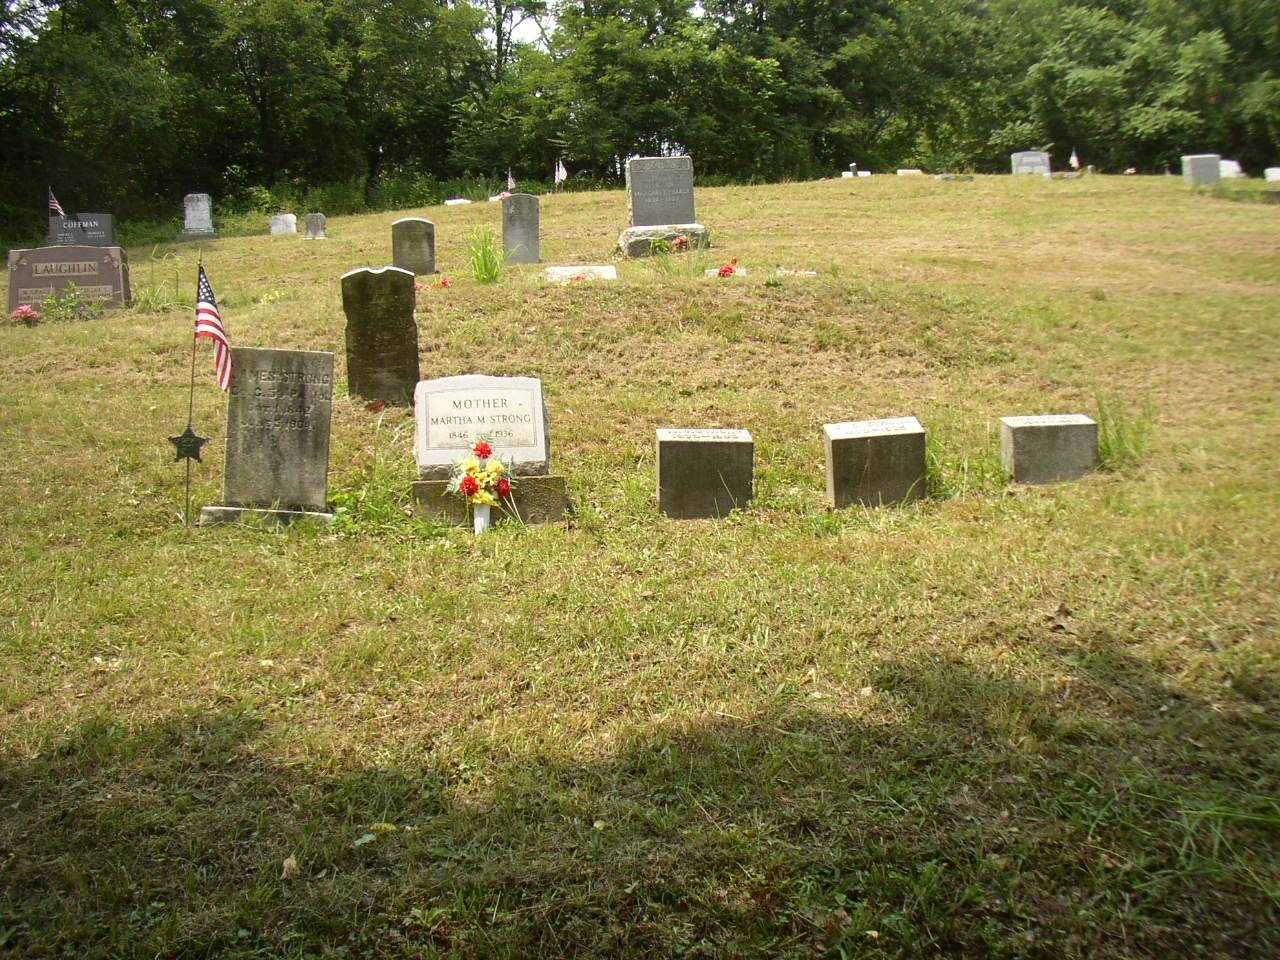 Graves of Pvt. James Strong, Wife Martha and 3 sons